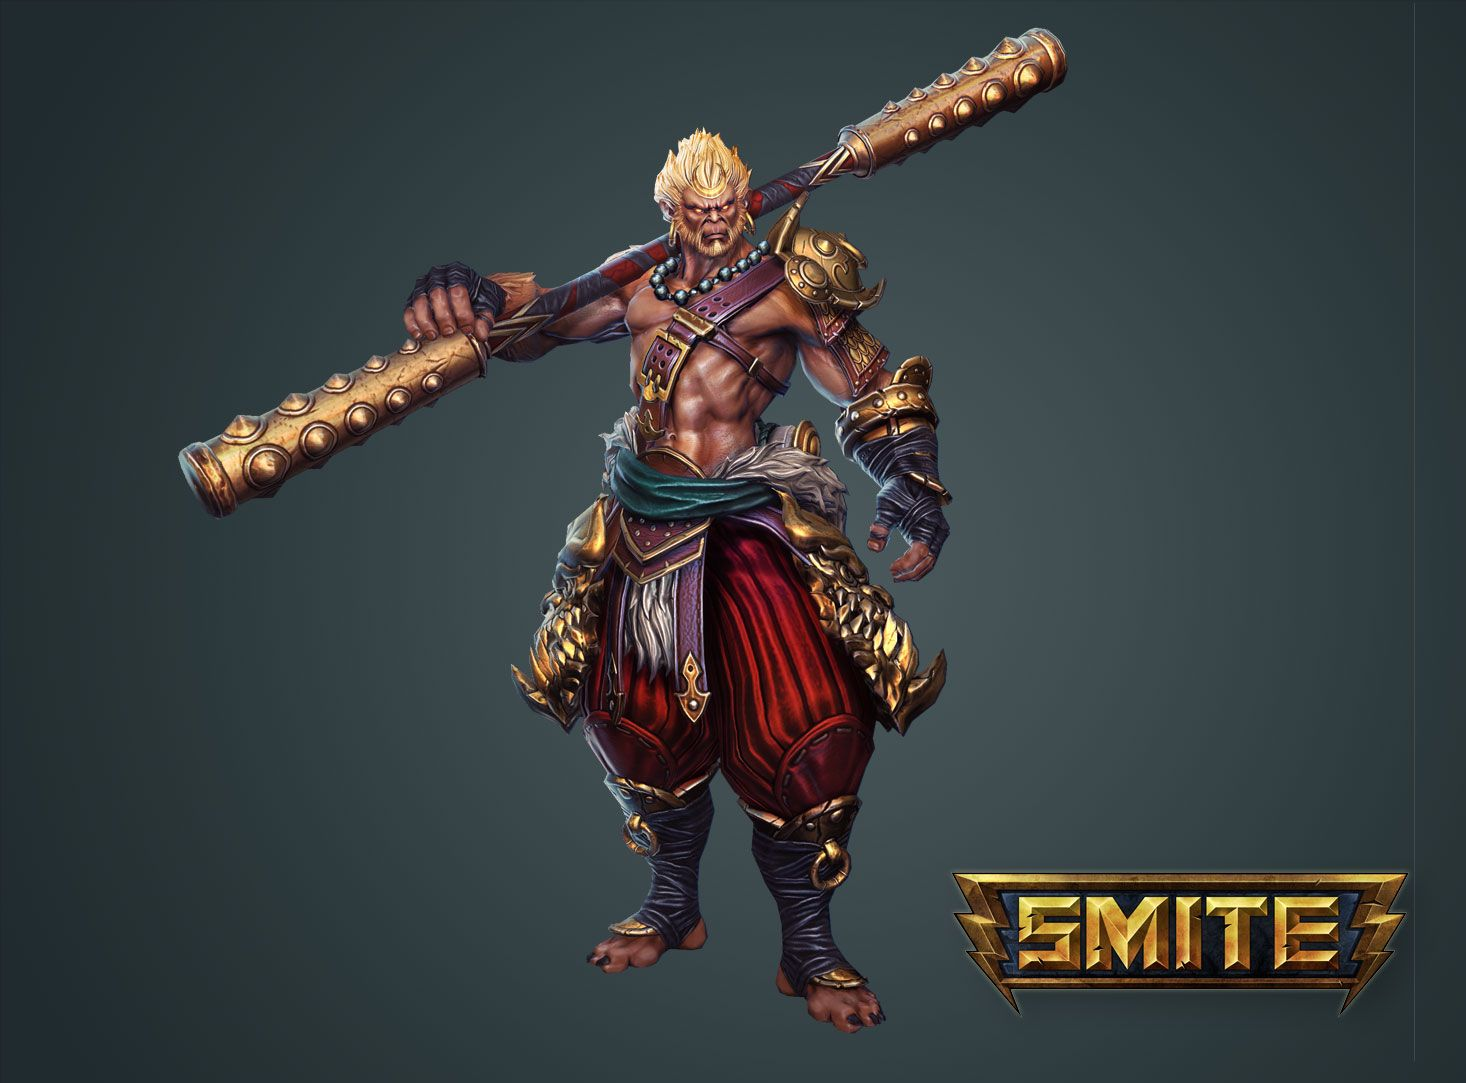 Smite Sun Wukong Build Guide: Carry with Sun Wukong :: SMITEFire